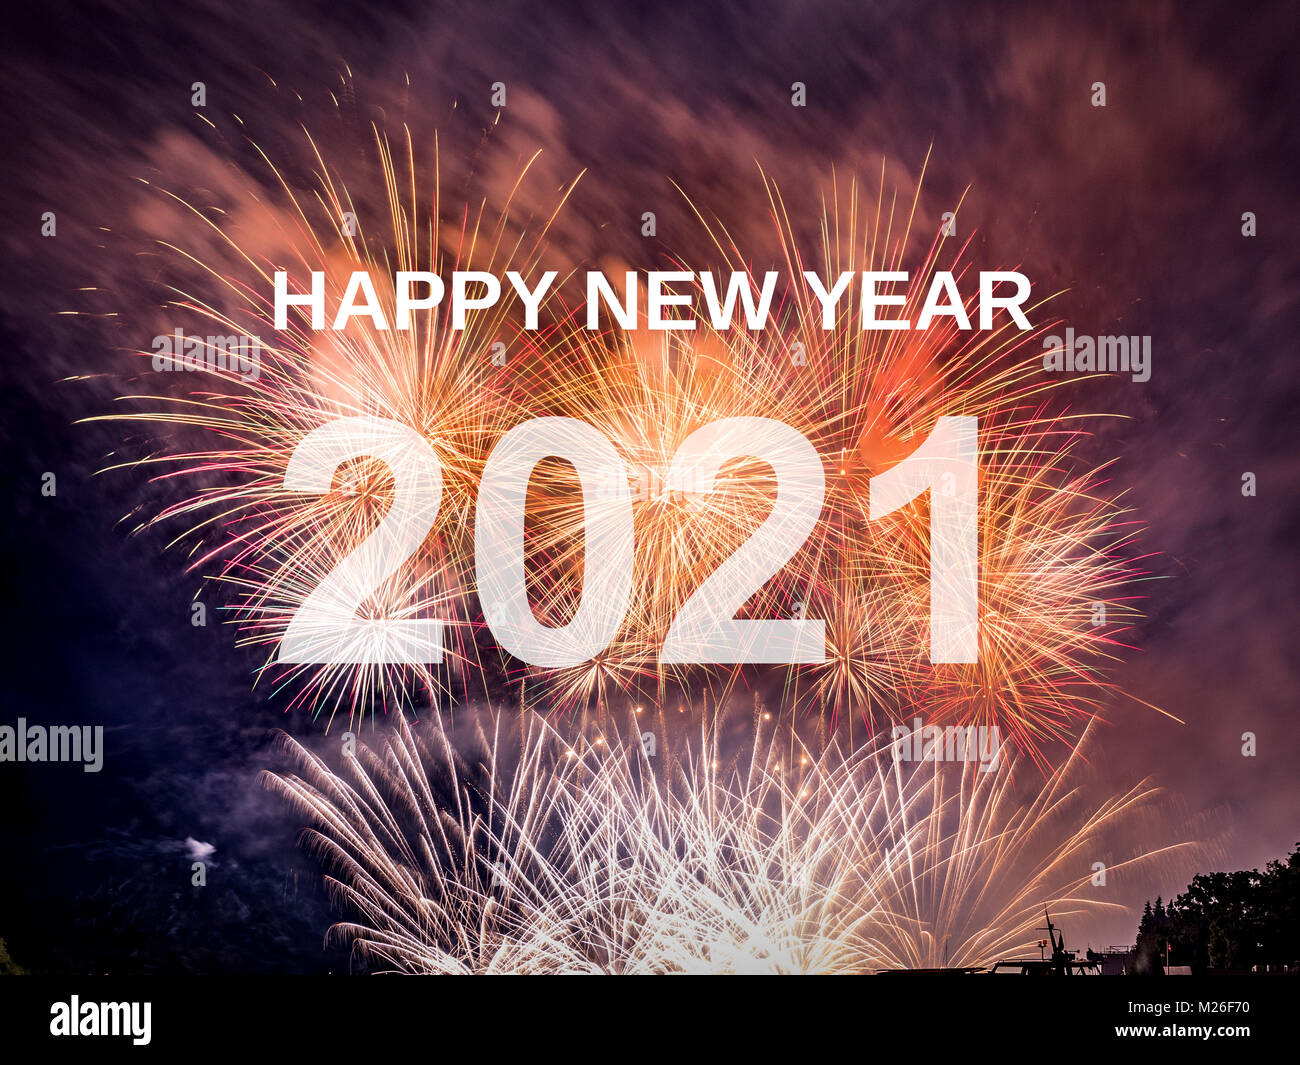 happy new year 2021 high resolution stock photography and images alamy https www alamy com stock photo happy new year 2021 with fireworks background celebration new year 173476660 html